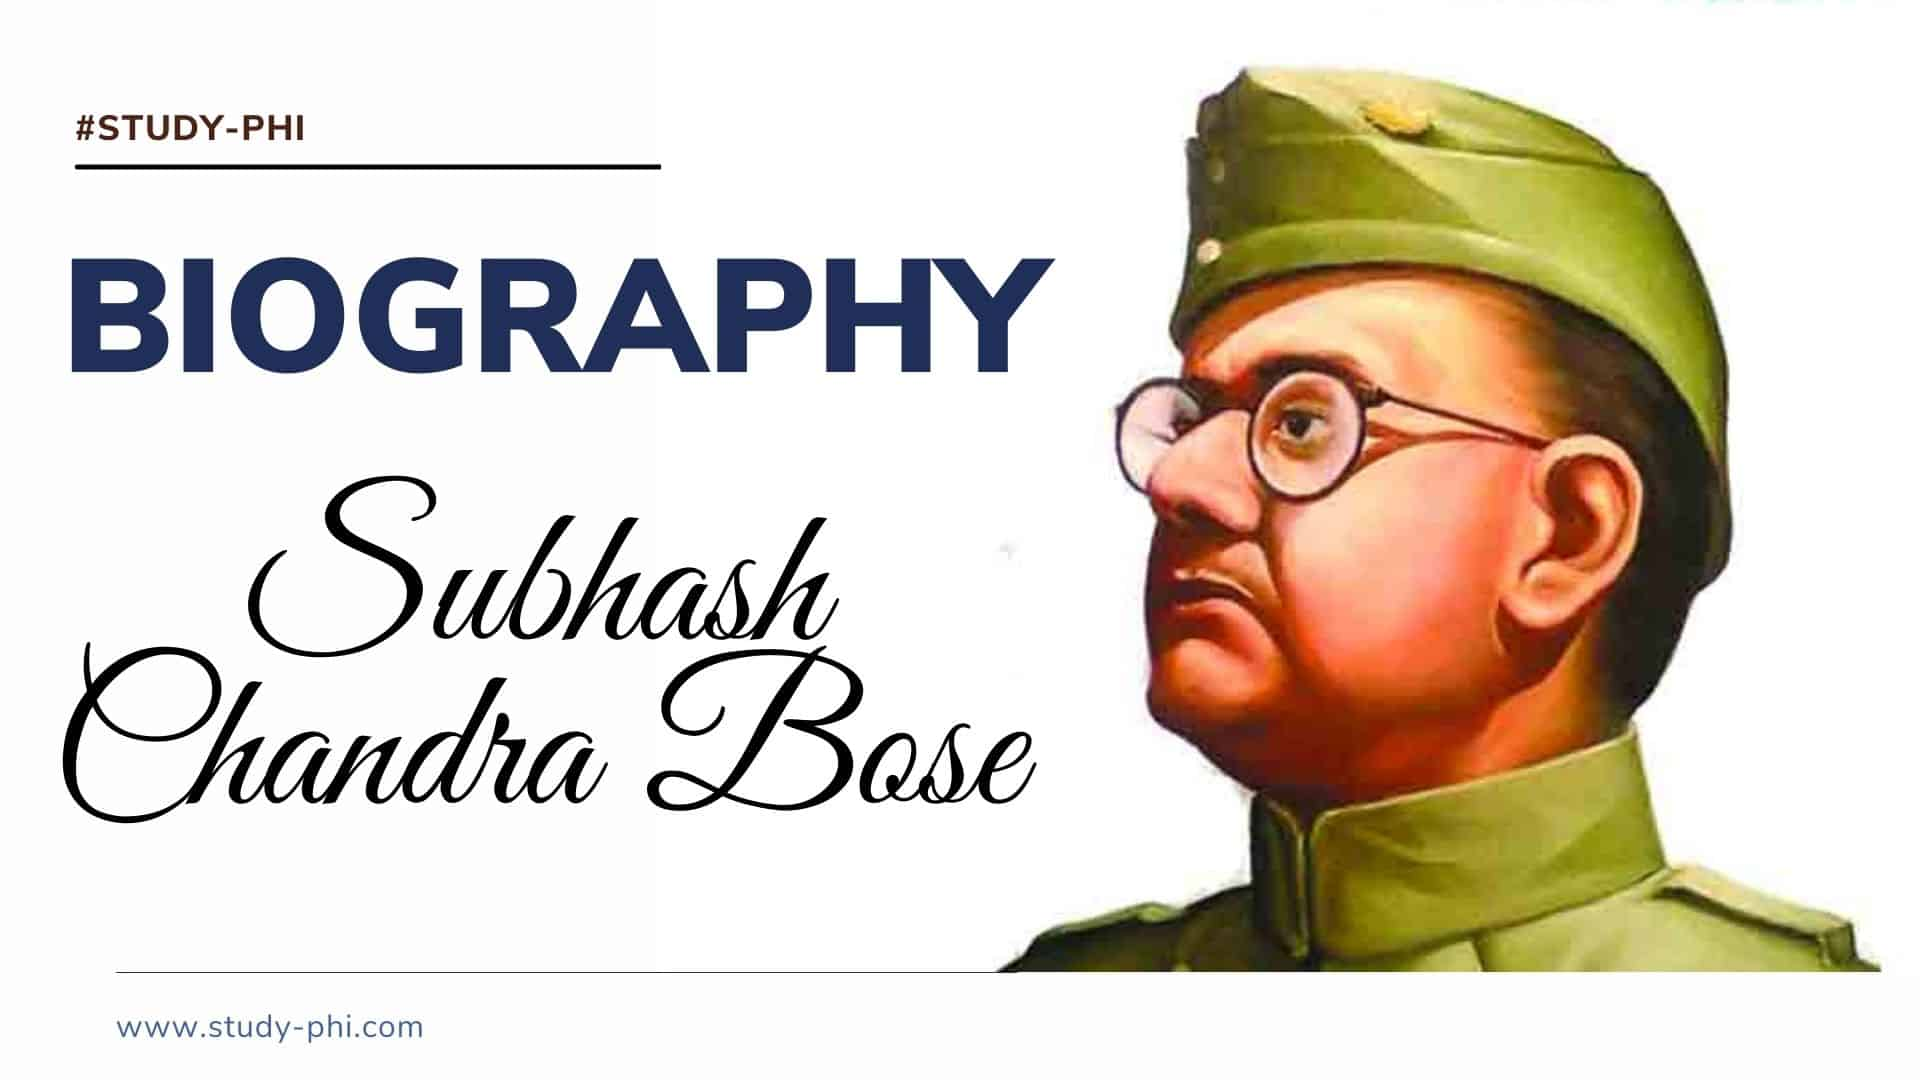 biography subhash chandra bose